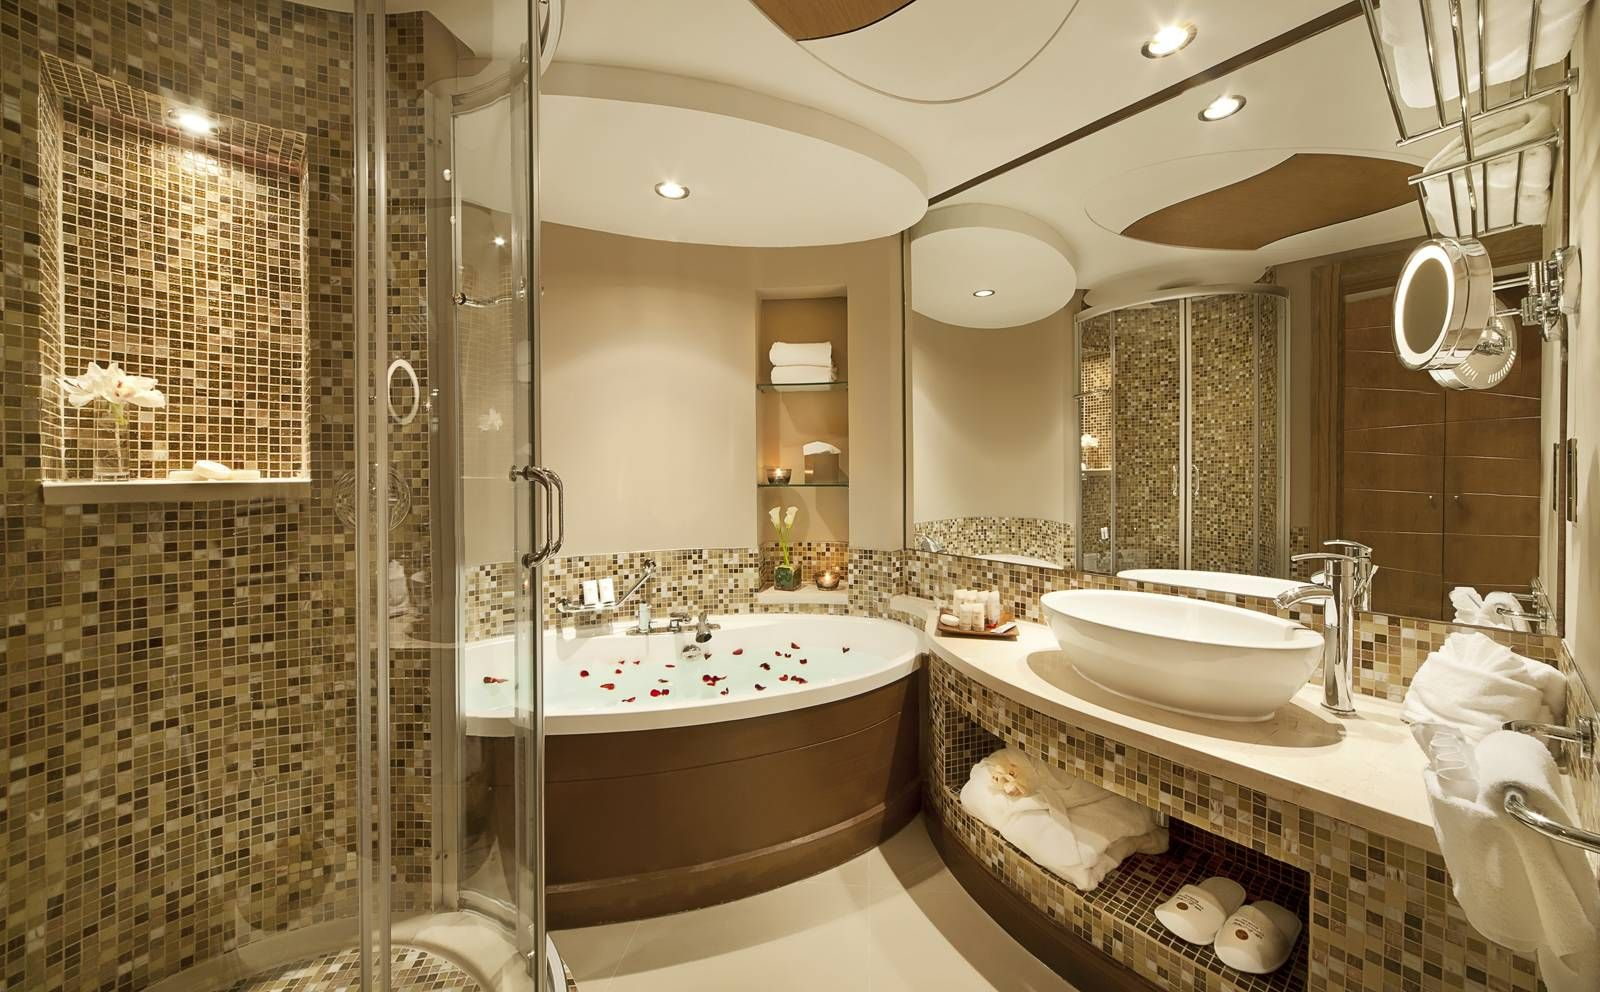 Images Of World Beautiful Bathrooms  Luxury Hotel Bathroom Stunning World Best Bathrooms Design Design Ideas